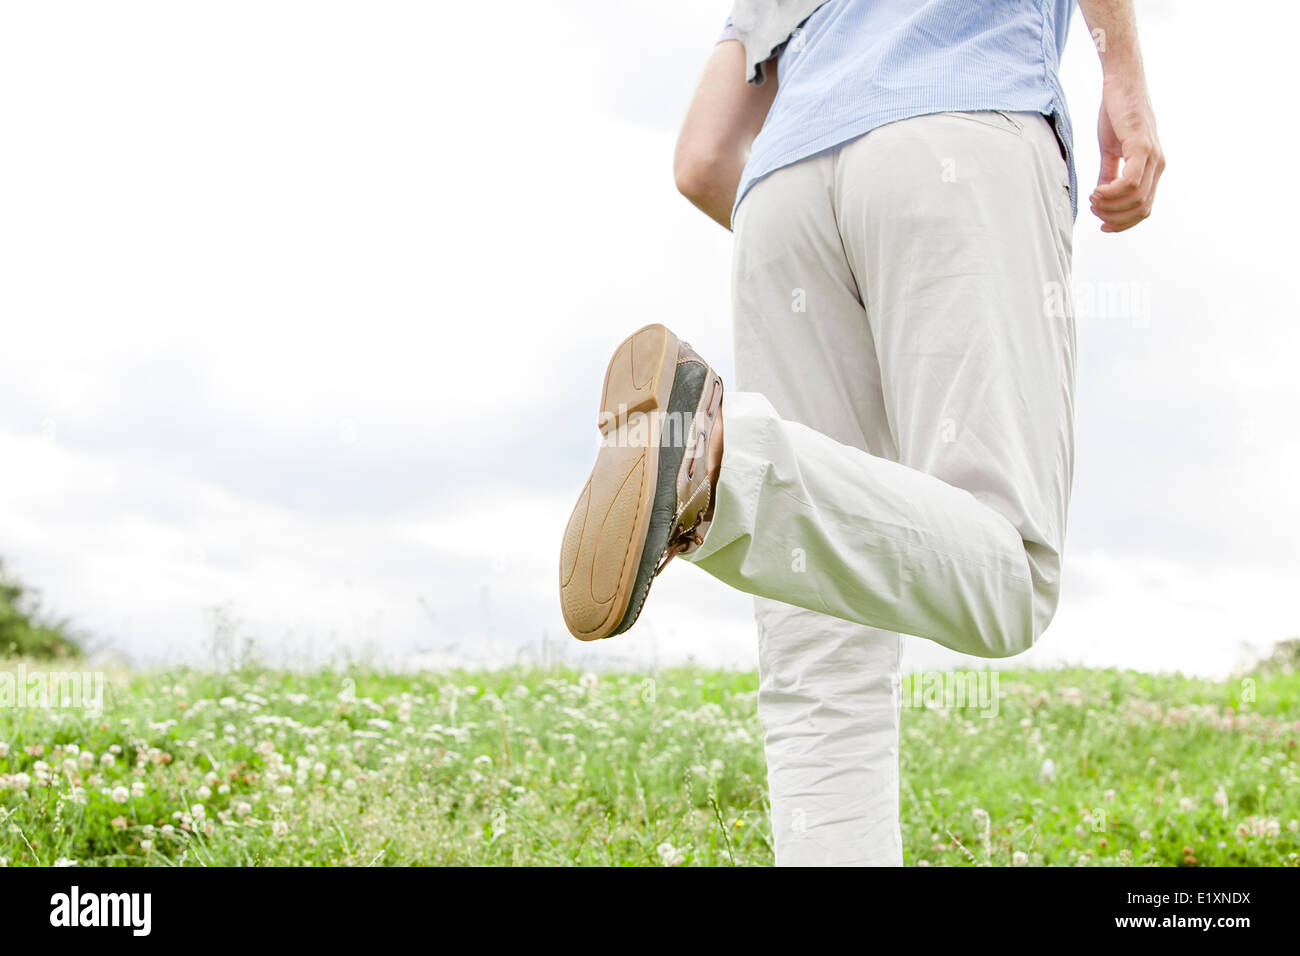 Cropped image of man running in park against sky - Stock Image